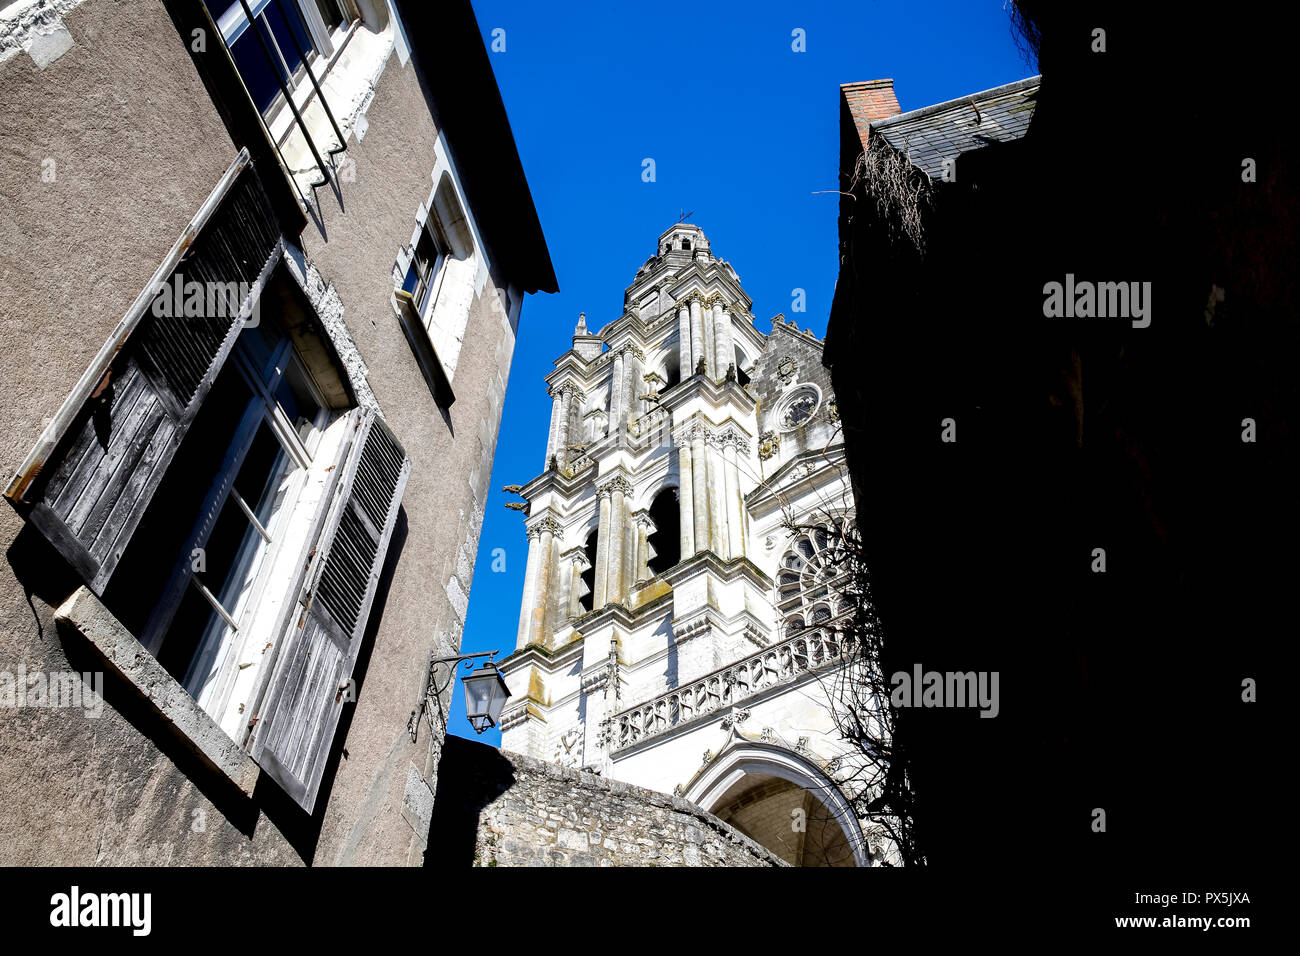 Old City of Blois, France. Cathedral spire. - Stock Image